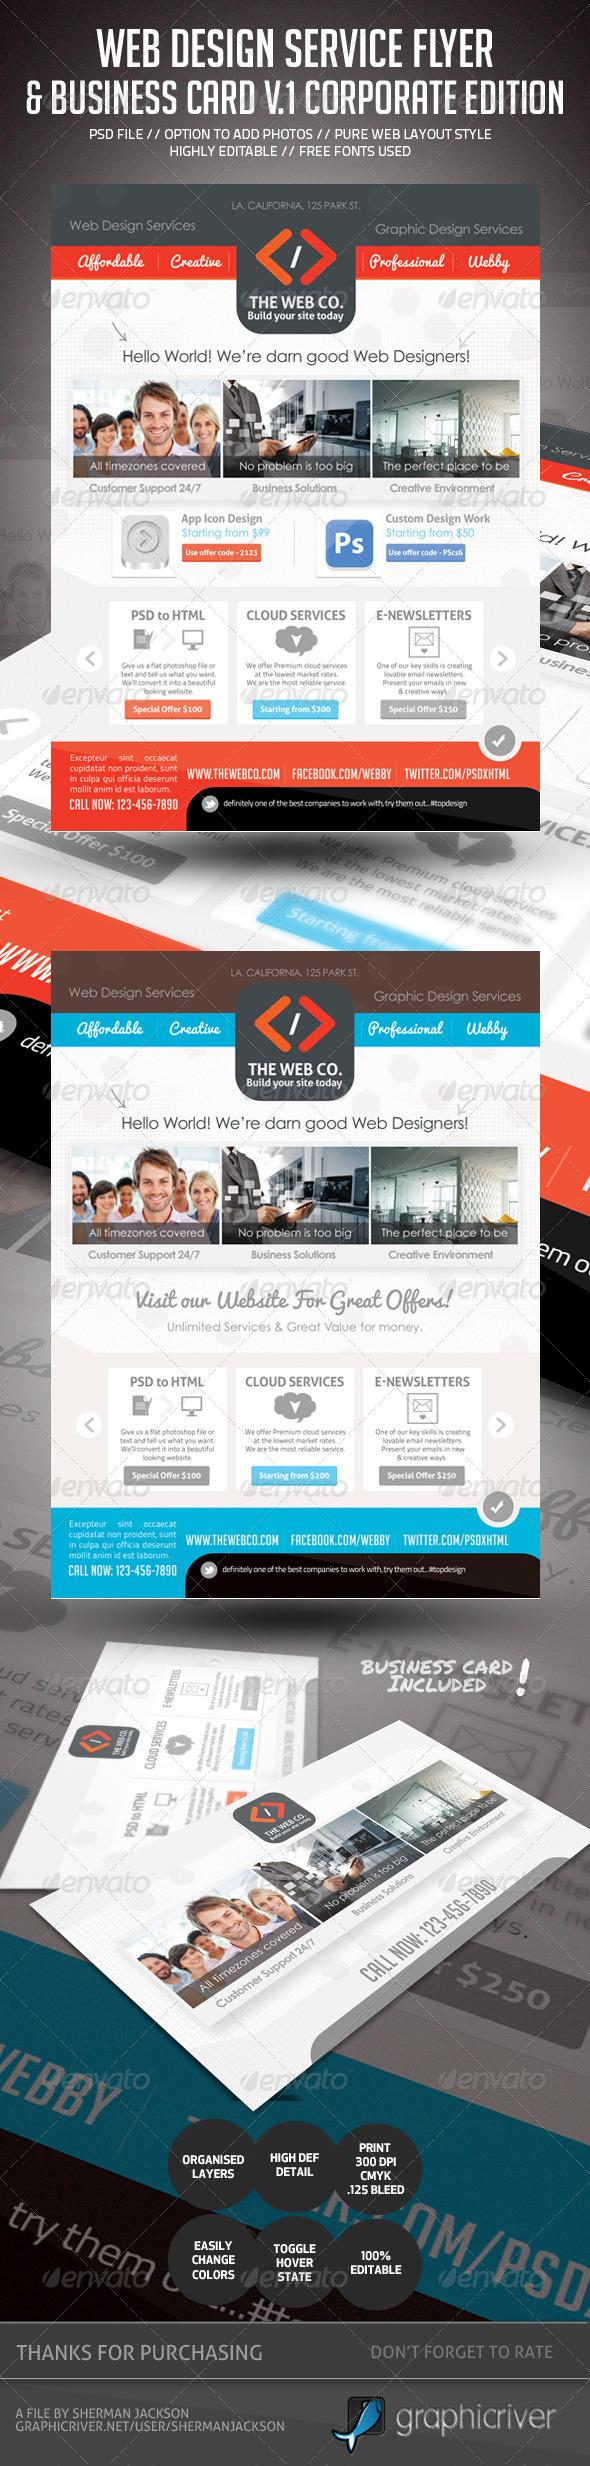 Web Design Service Set - 1 (Flyer & Business Card) - Commerce Flyers